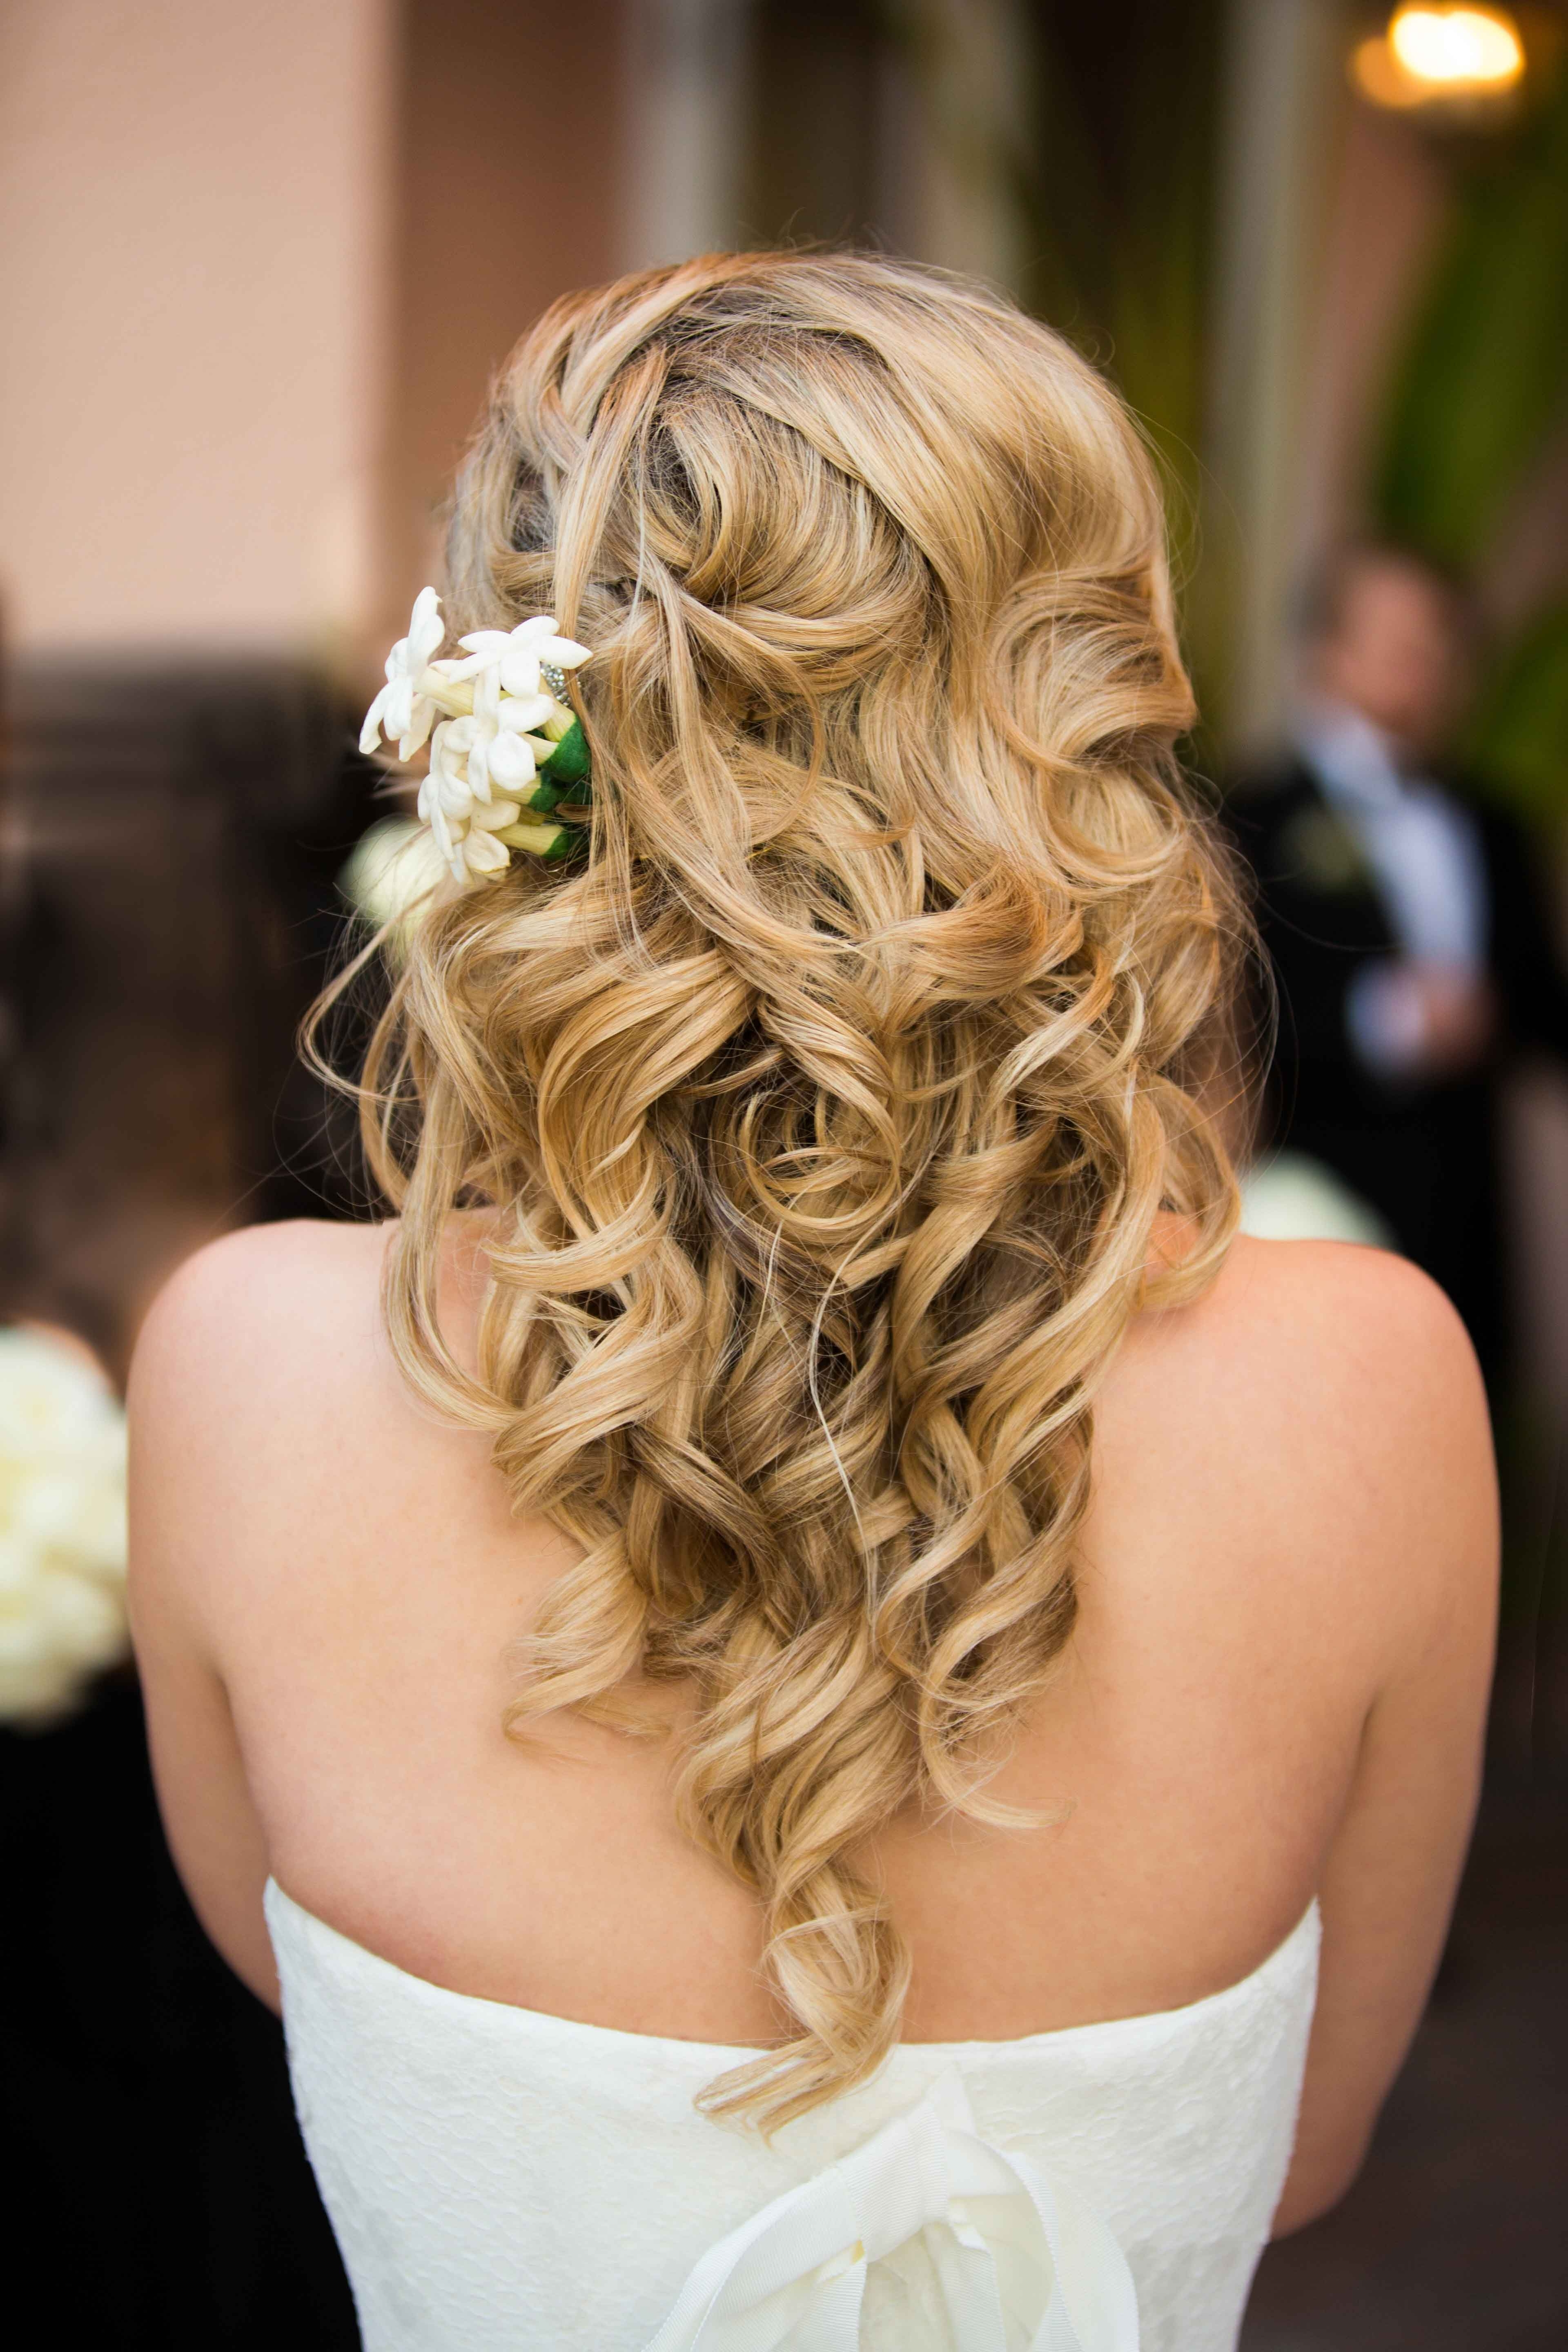 Newest Hairstyles For Long Hair For A Wedding Party With Regard To 5 Easy Hairstyles For The Ladies Of The Wedding Party – Inside Weddings (View 10 of 15)